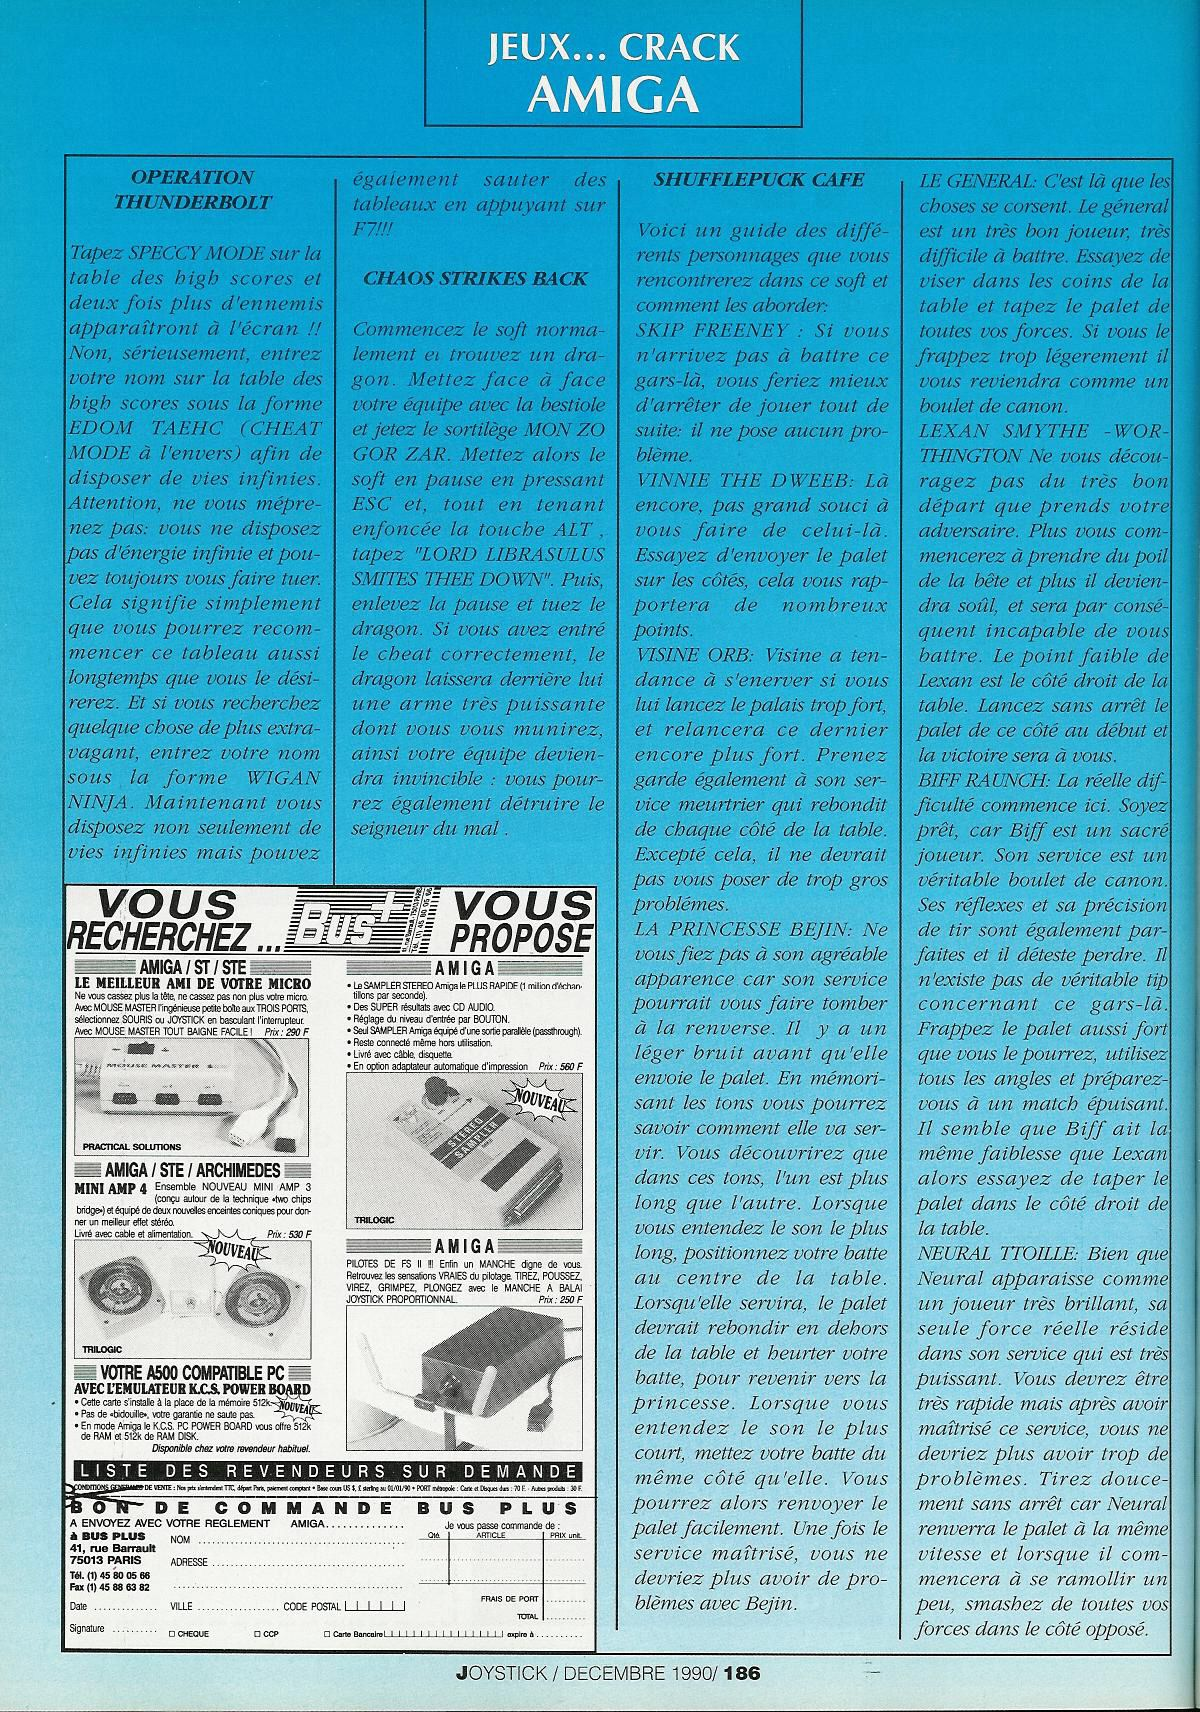 Chaos Strikes Back for Amiga Fake CSB Cheat published in French magazine 'Joystick', Issue #11 December 1990, Page 186